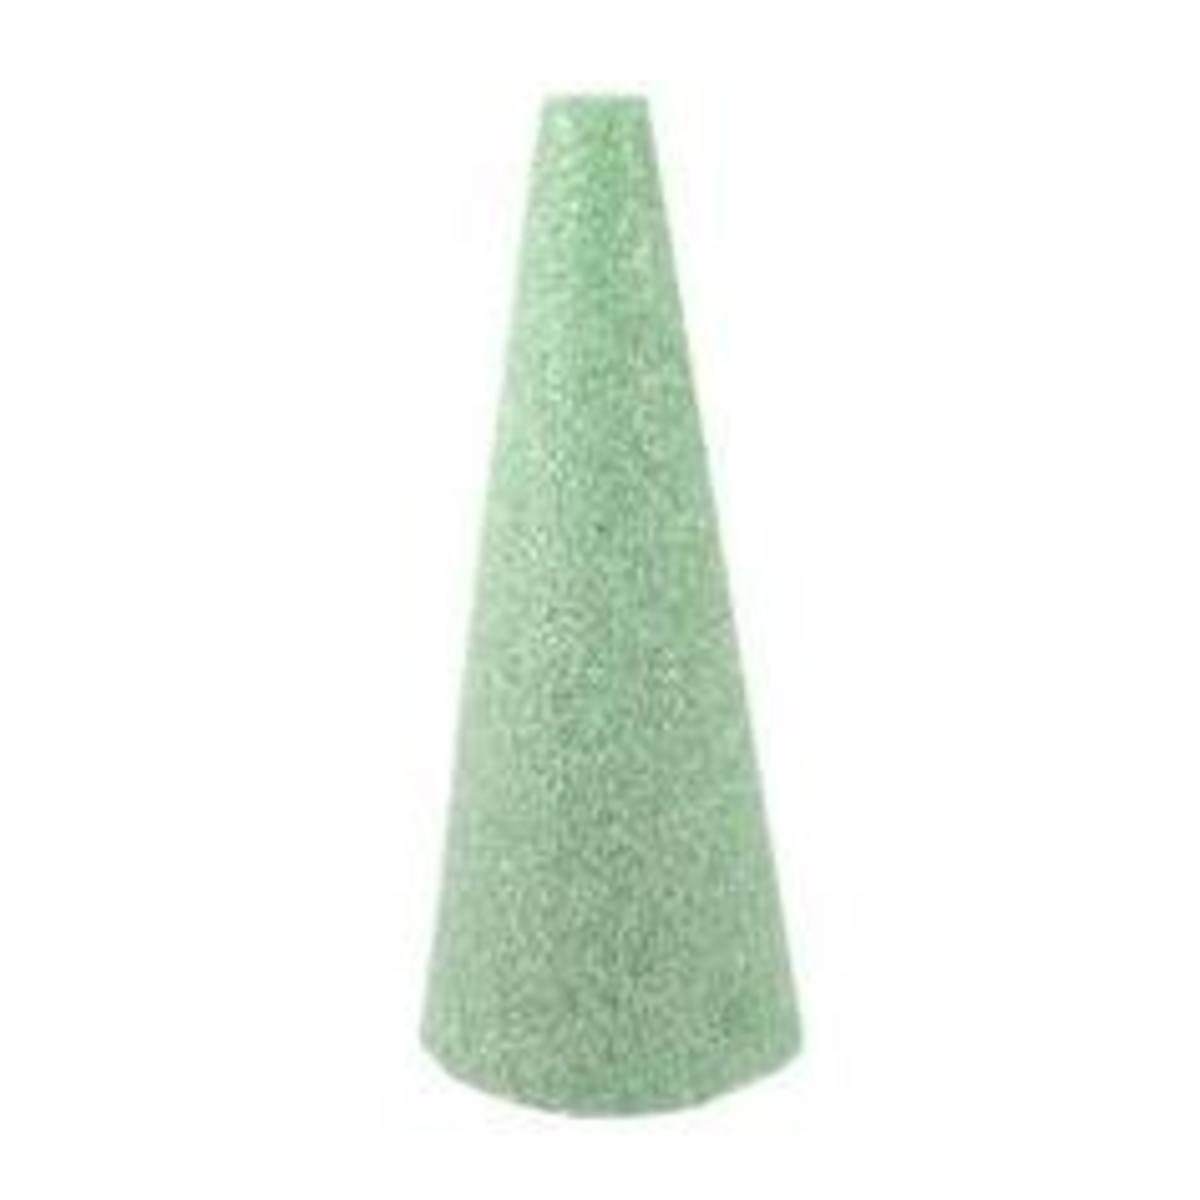 A styrofoam cone is a great way to make a simple Christmas tree.